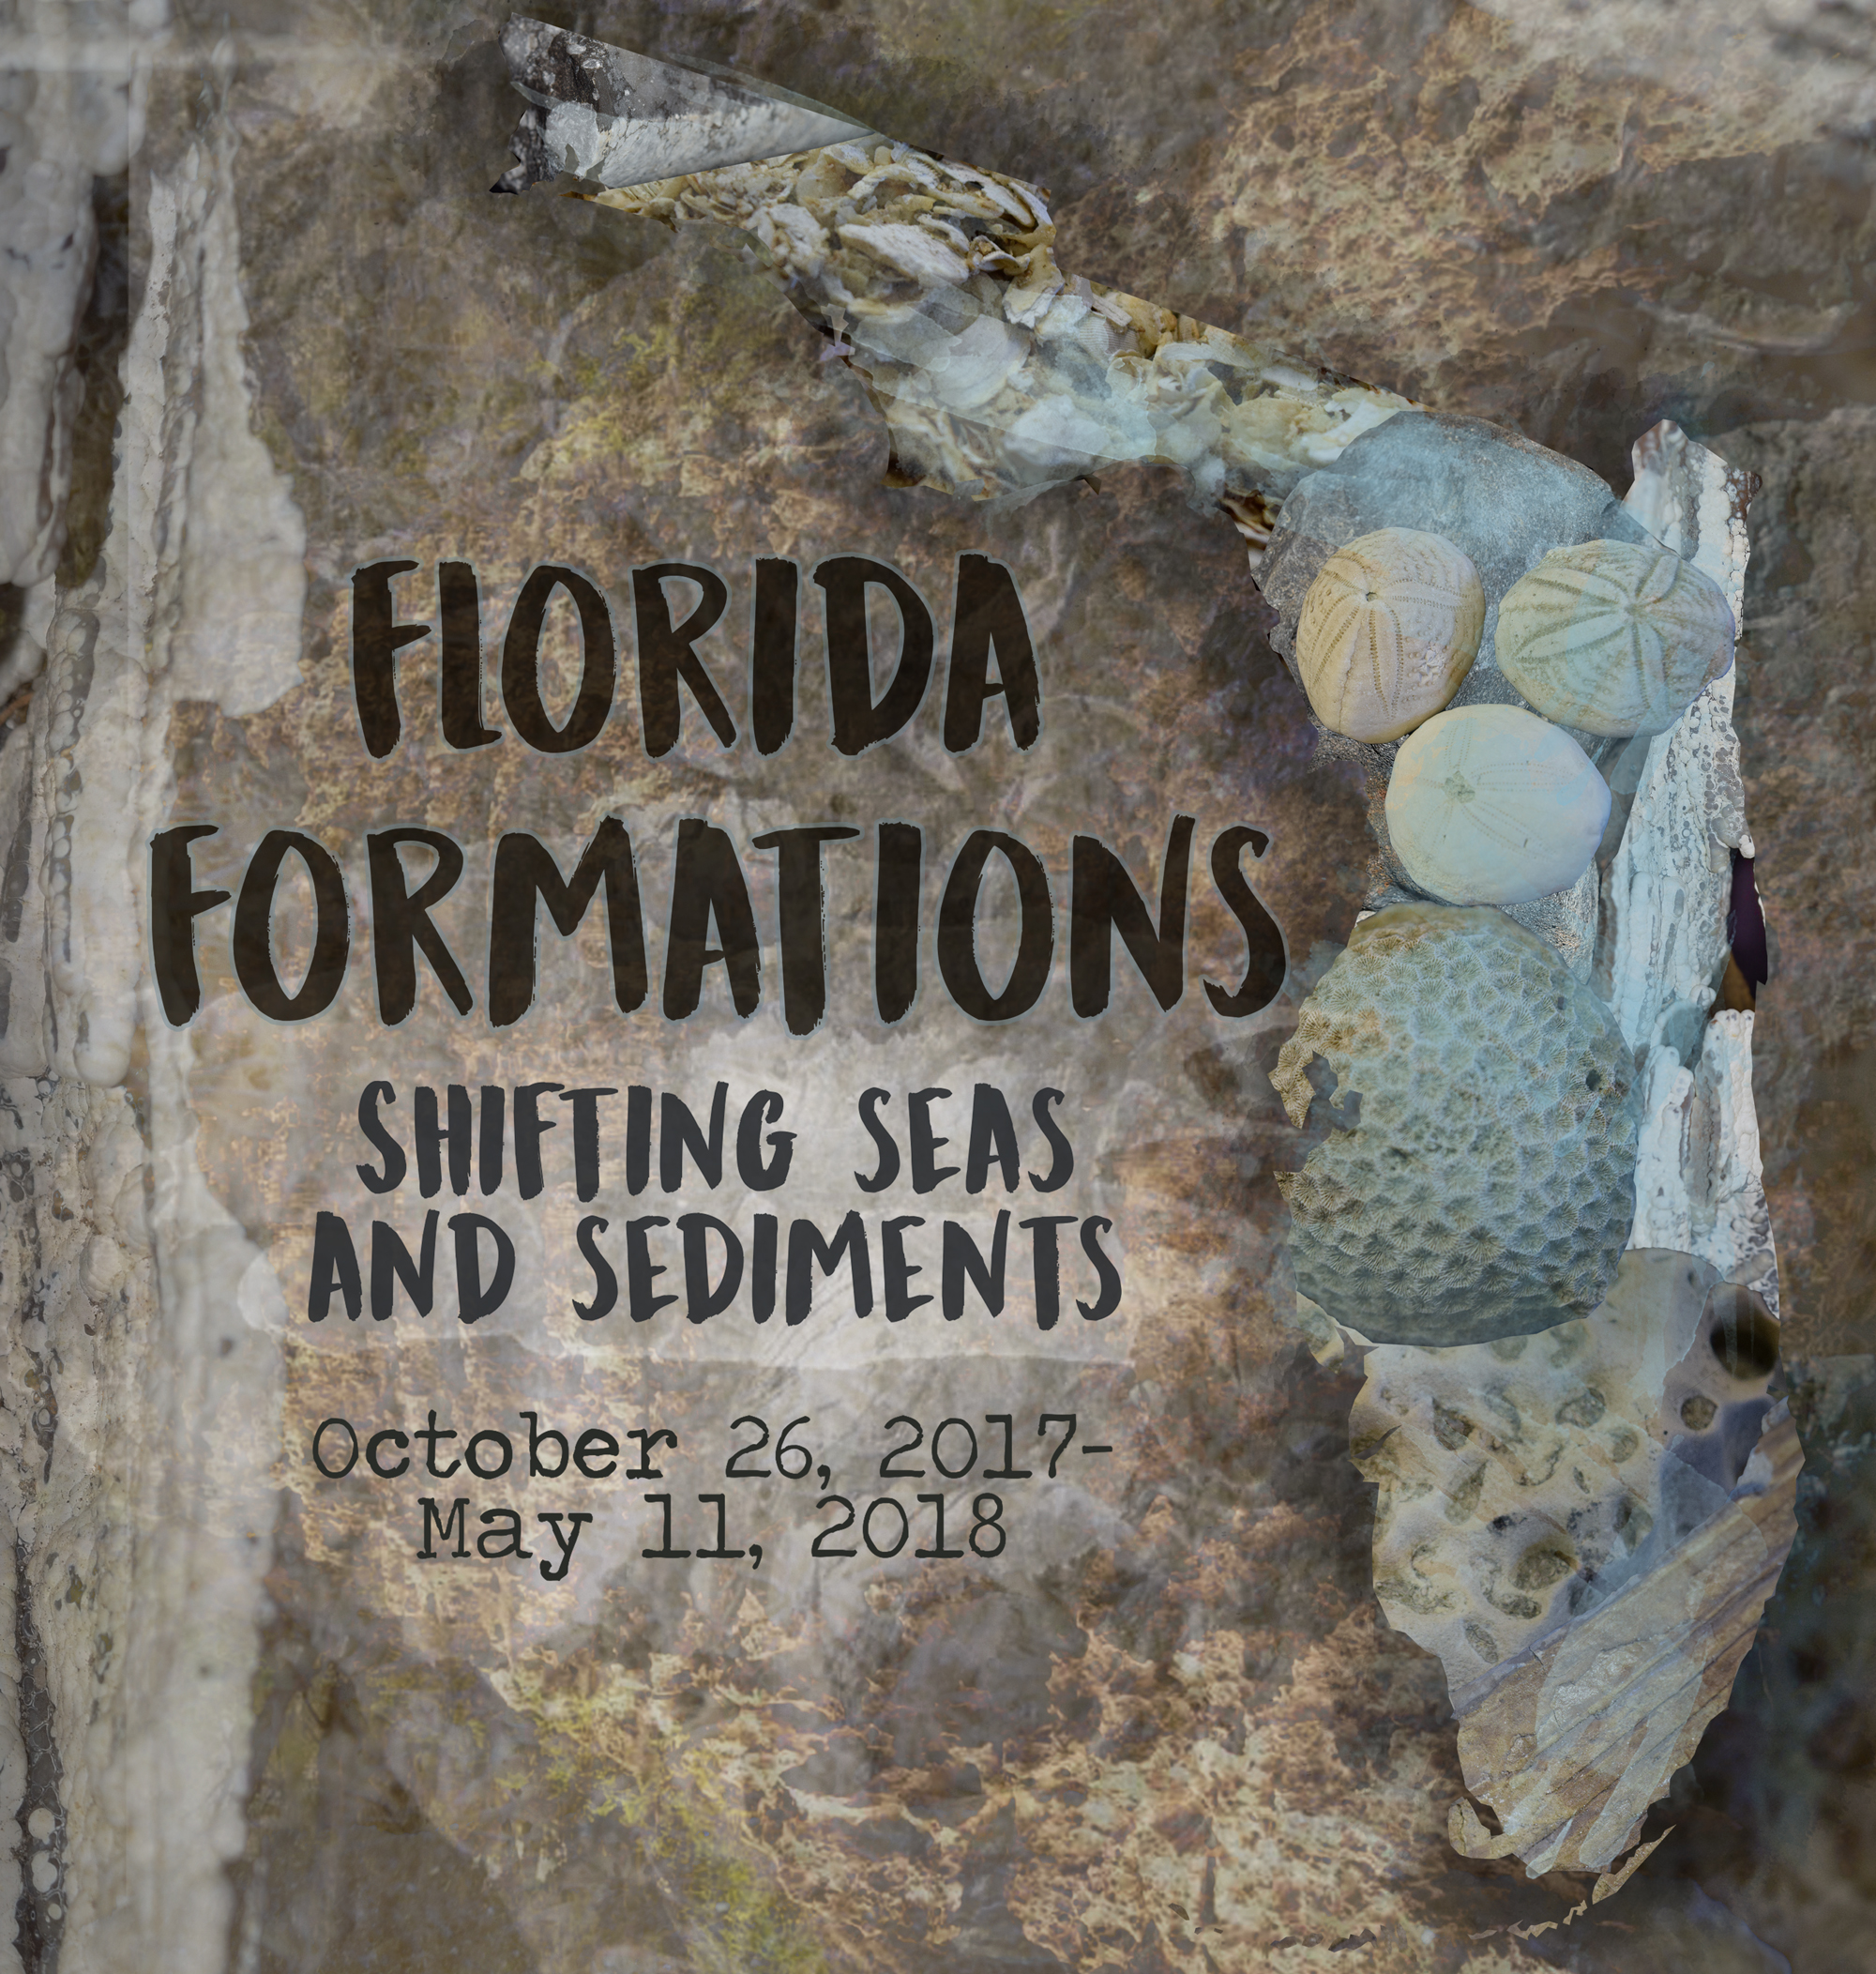 Florida Formations